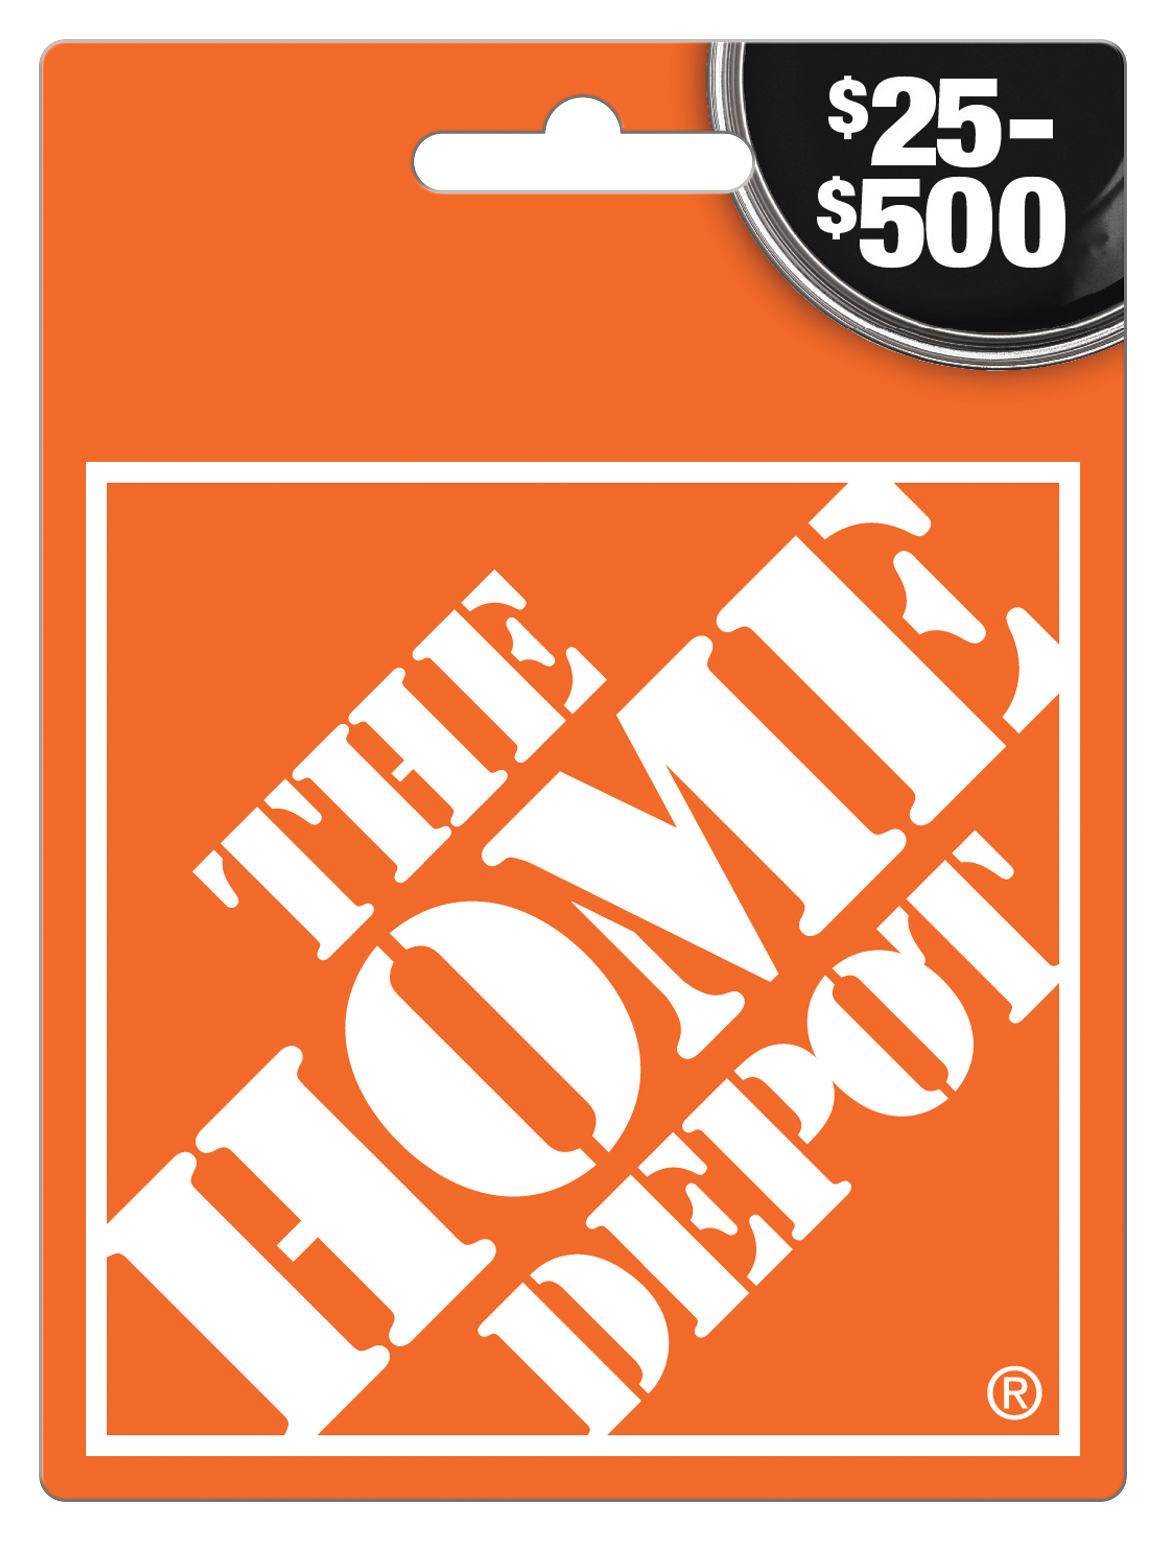 Home_Depot_GIftcard_Wrap_25_500_040319.png